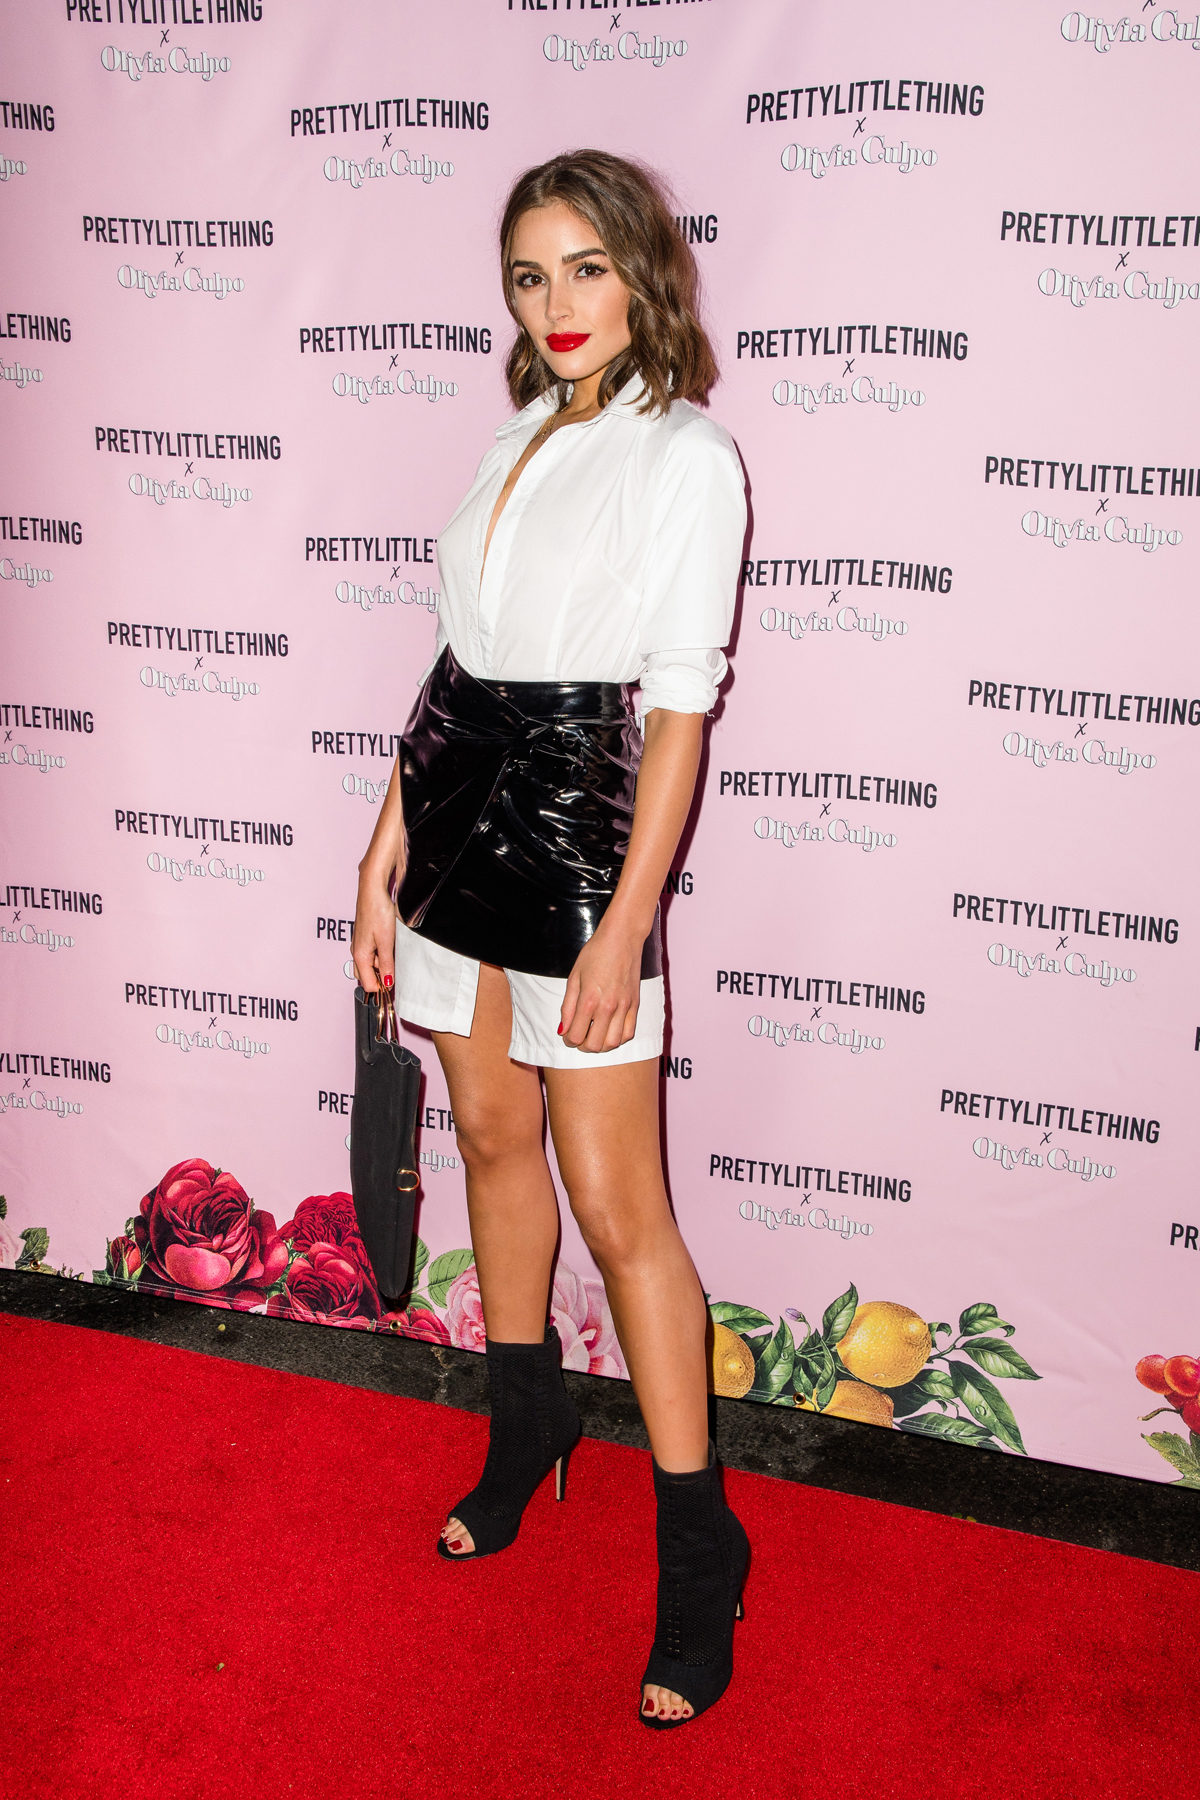 PrettyLittleThing PLT X Olivia Culpo Collection  Celebrity Launch Party Olivia Culpo at The Liasion.jpg